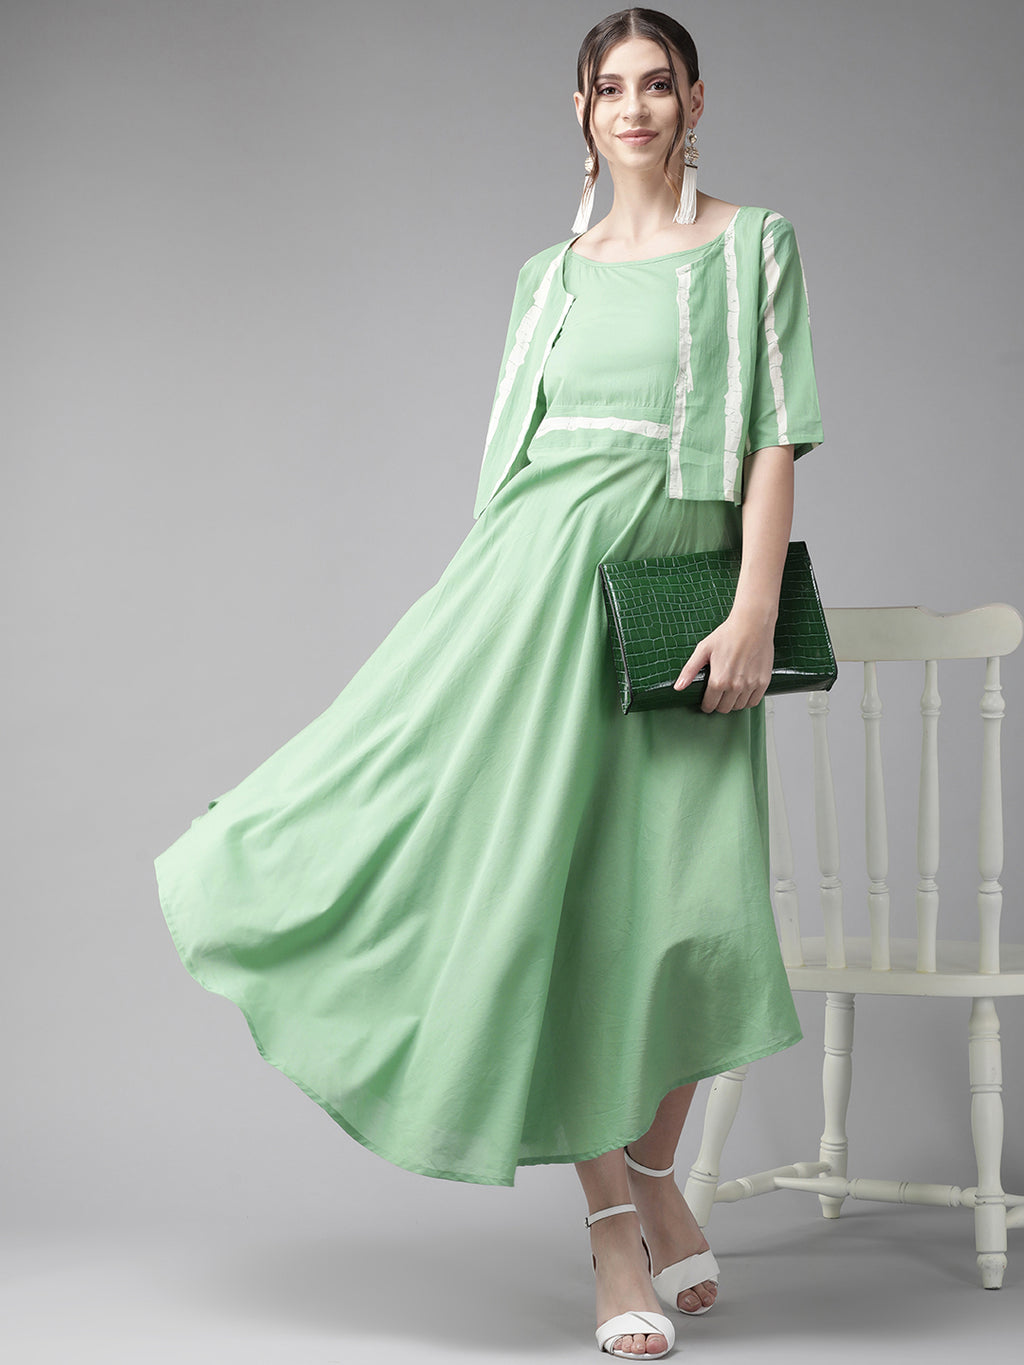 Green Solid A-Line Dress with Jacket (Fully Stitched)